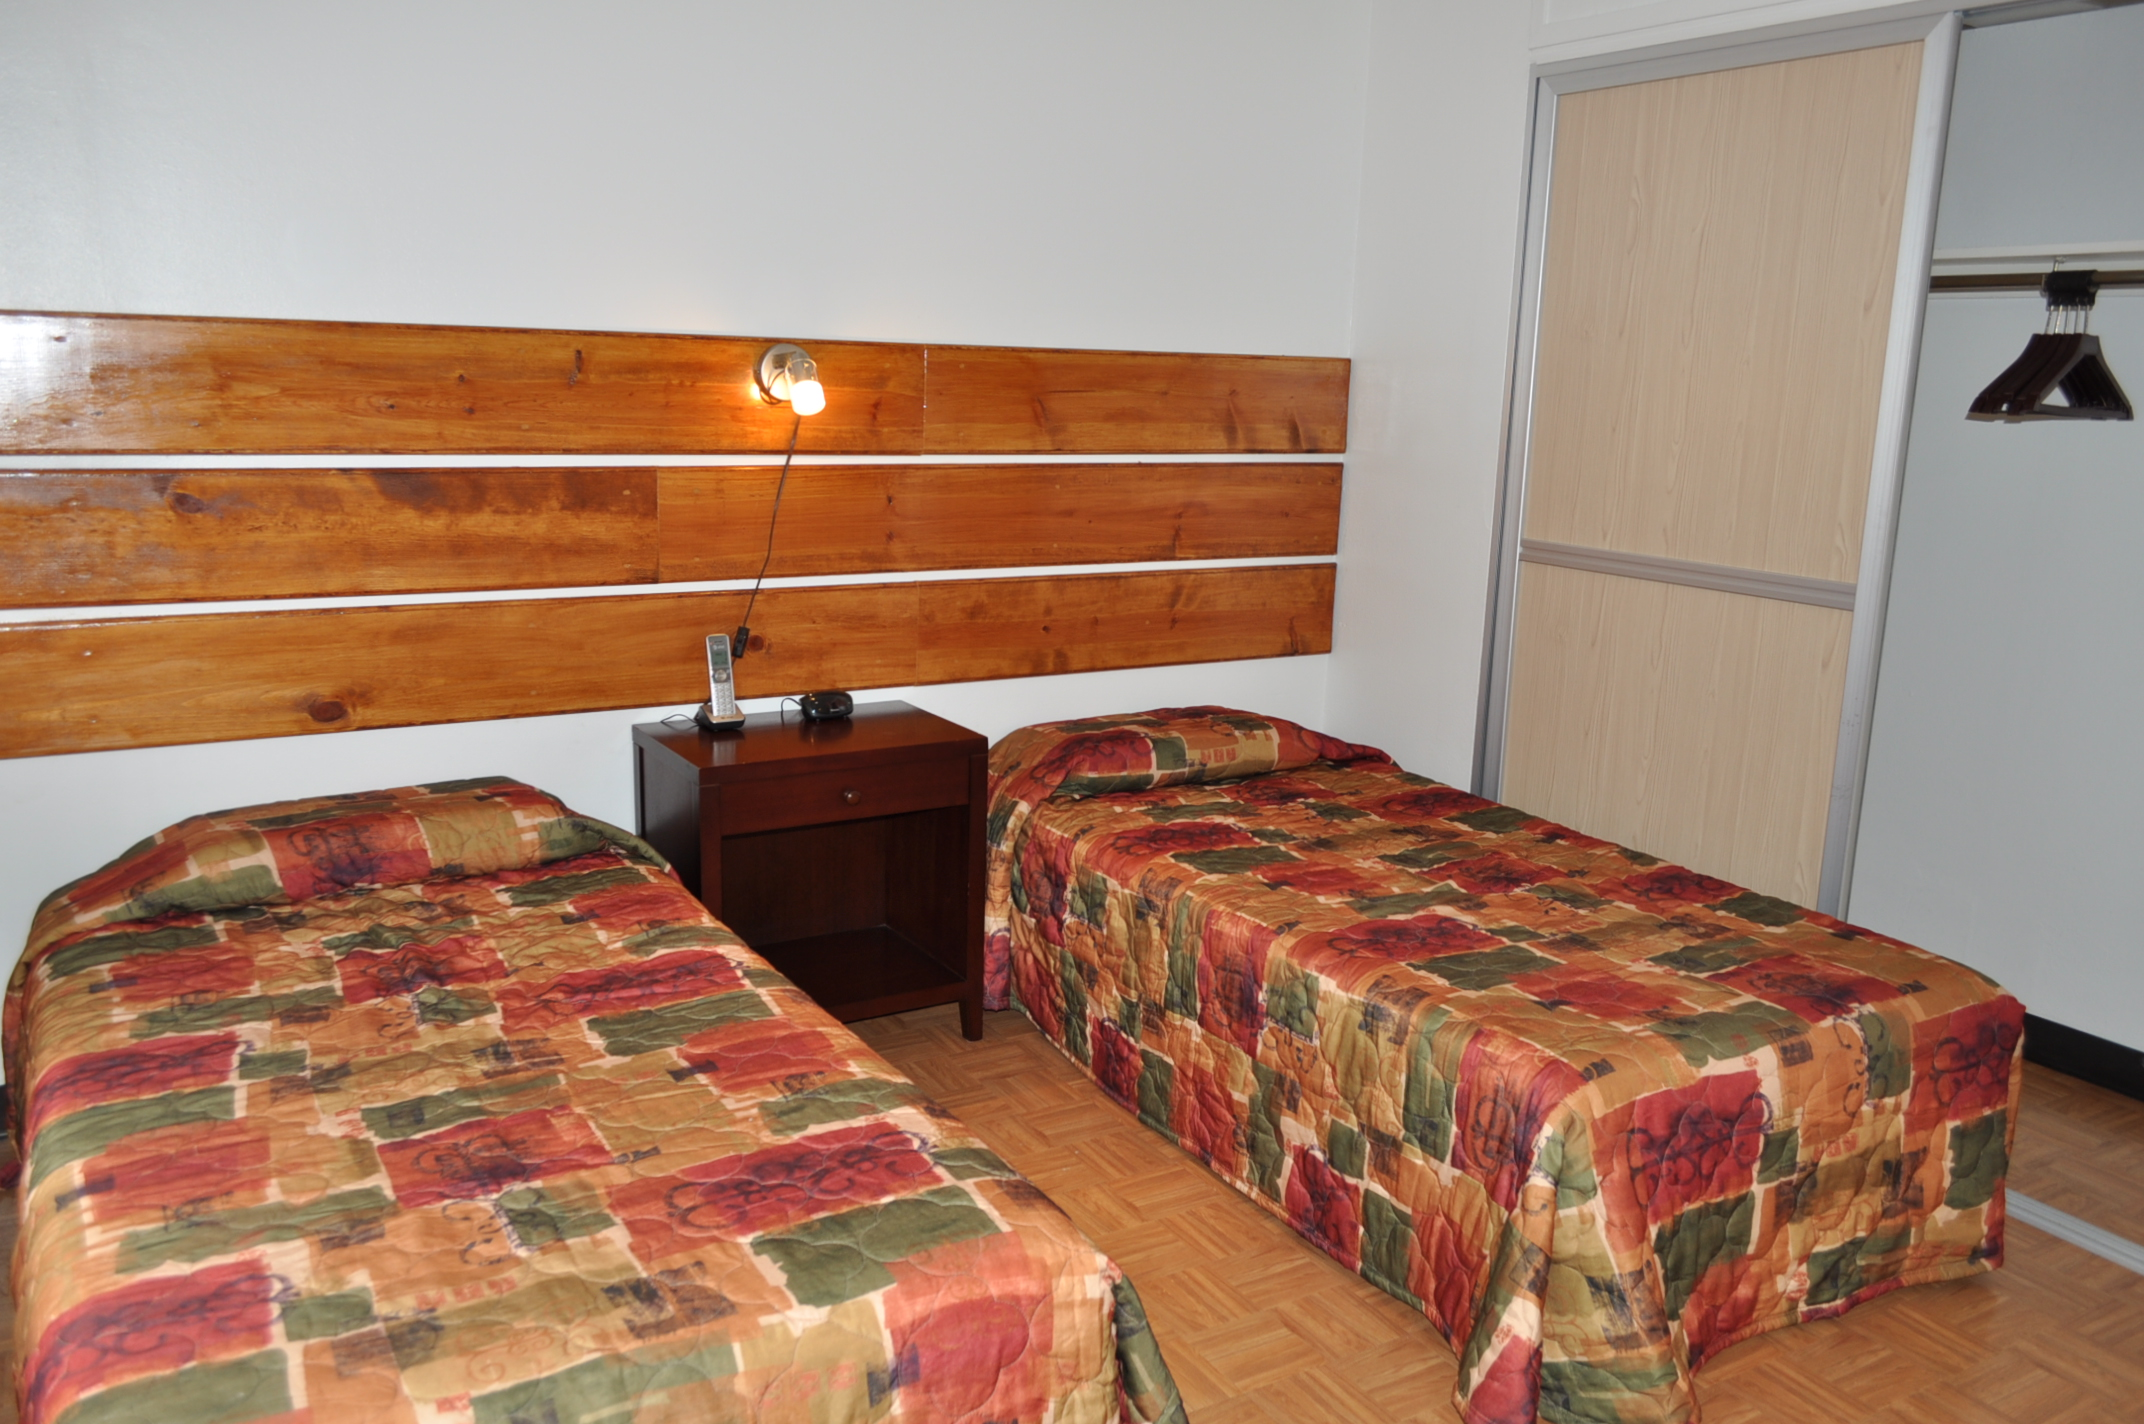 2 bedroom - 2 single beds